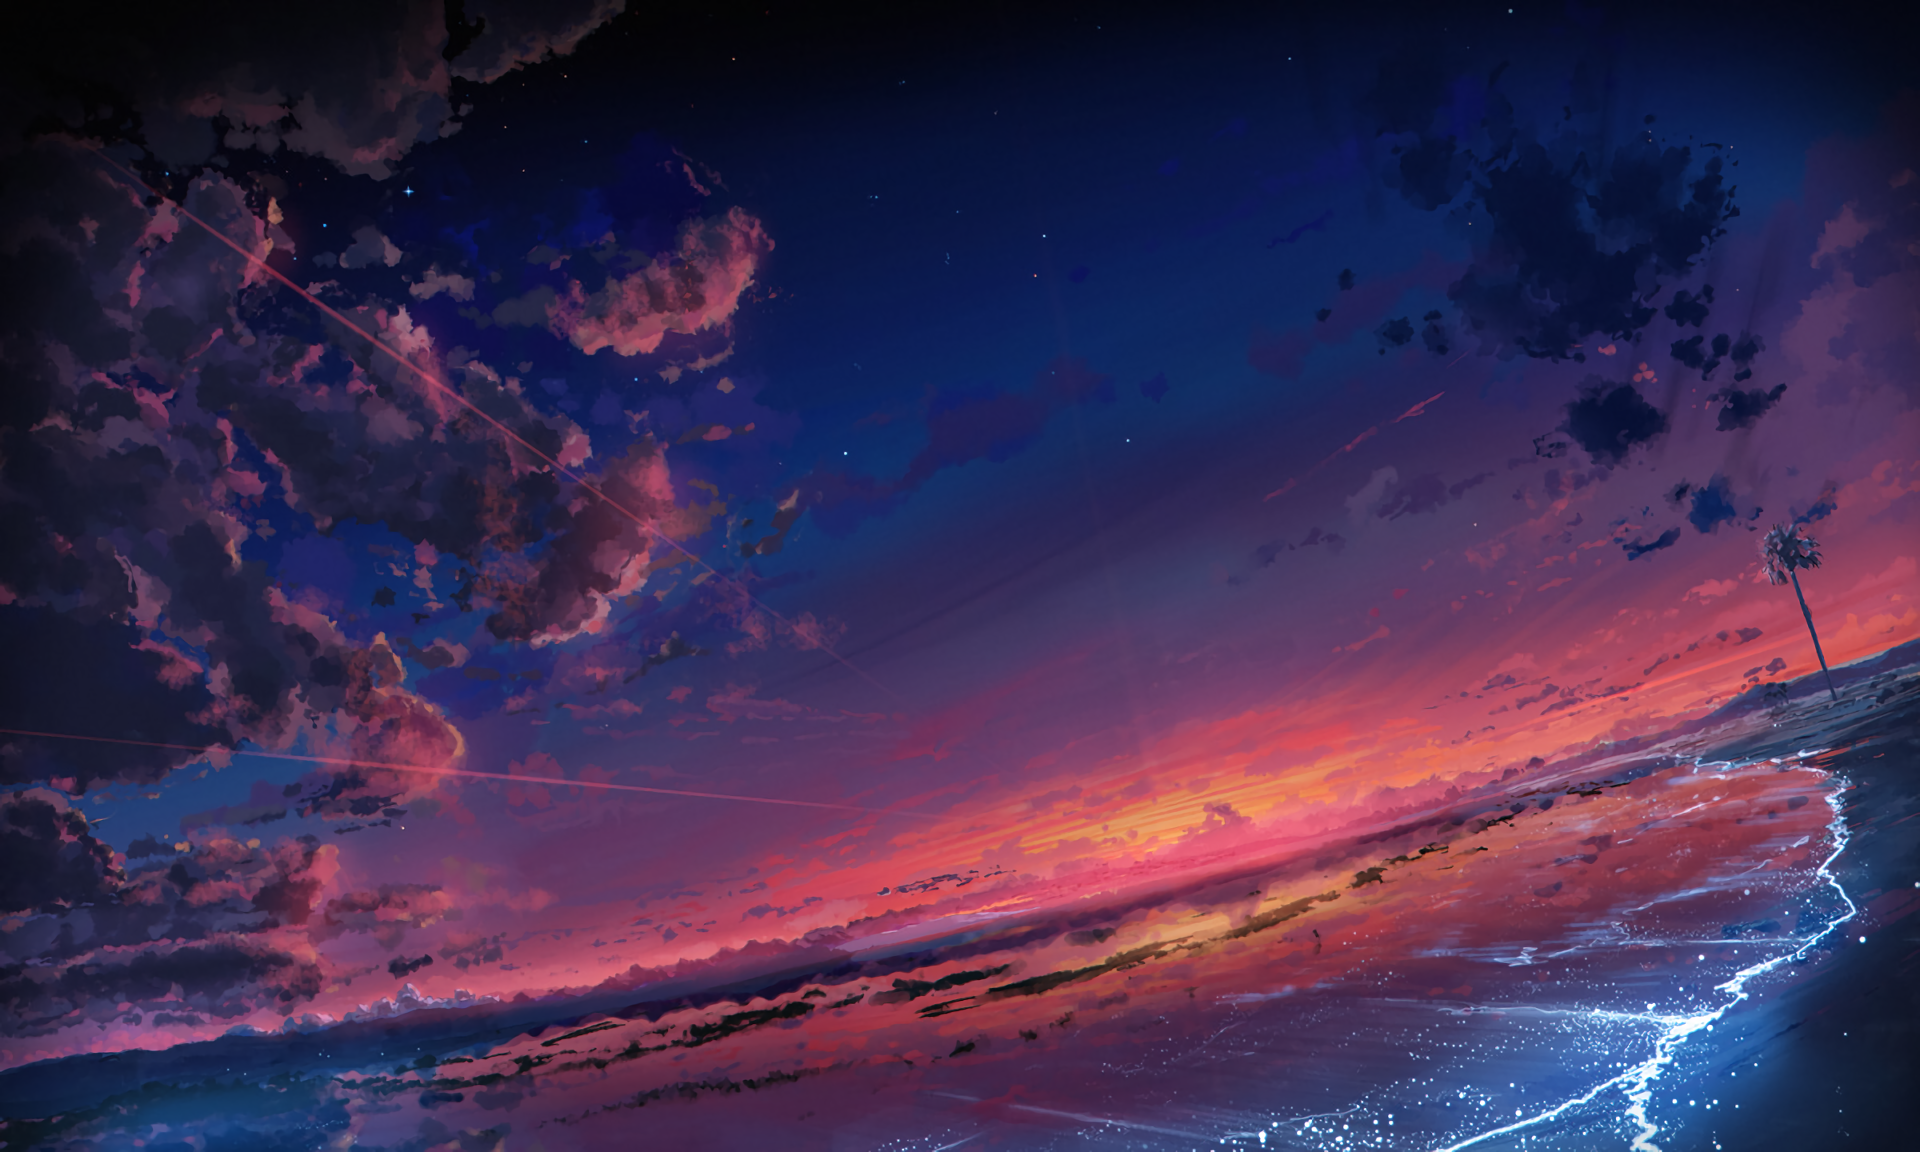 Anime Original Sky Cloud Scenic Beach Sunset Wallpaper